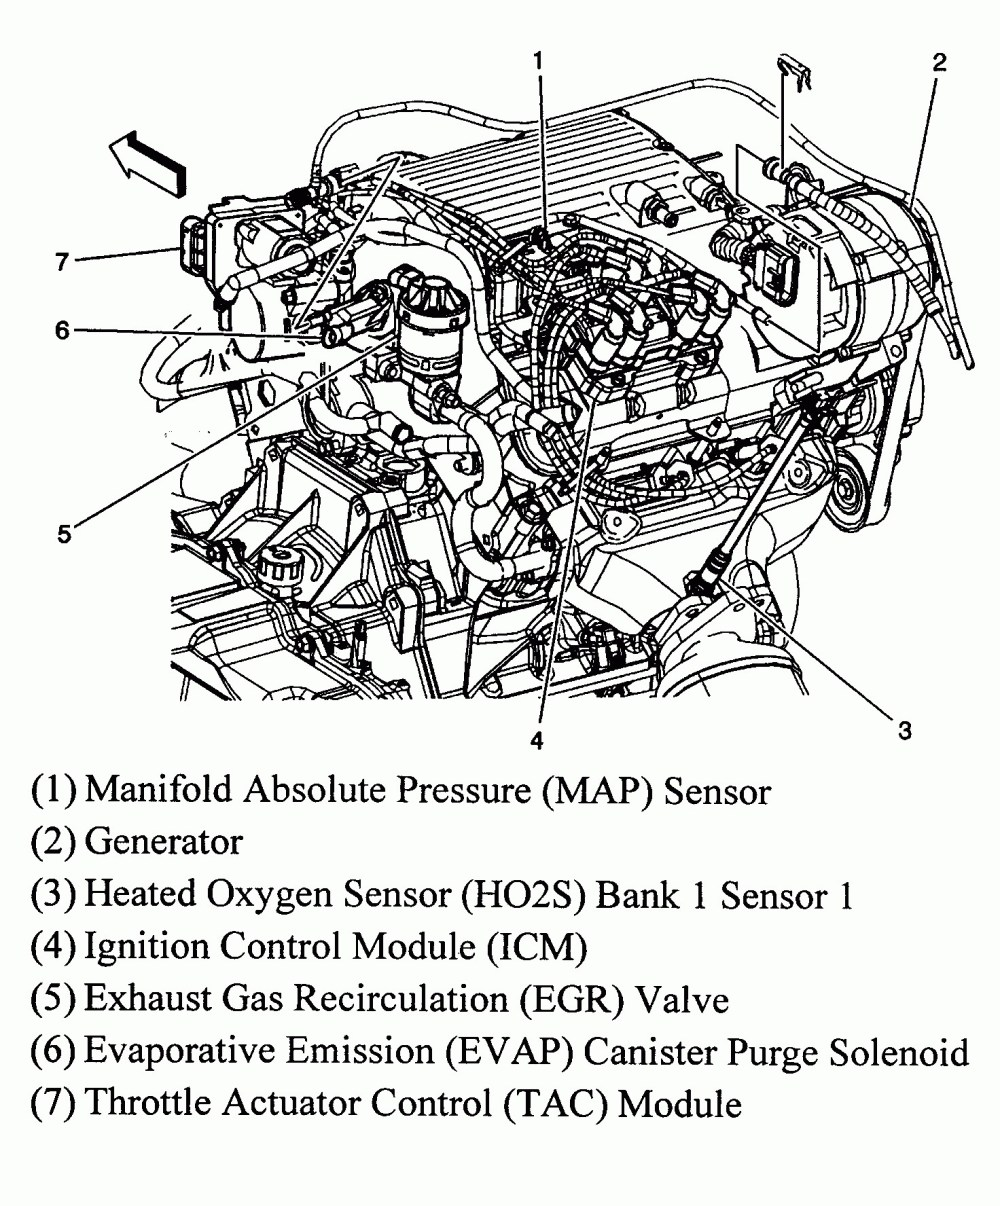 medium resolution of 2006 grand prix engine diagram schema diagram database2006 grand prix engine diagram wiring diagram blog 2006